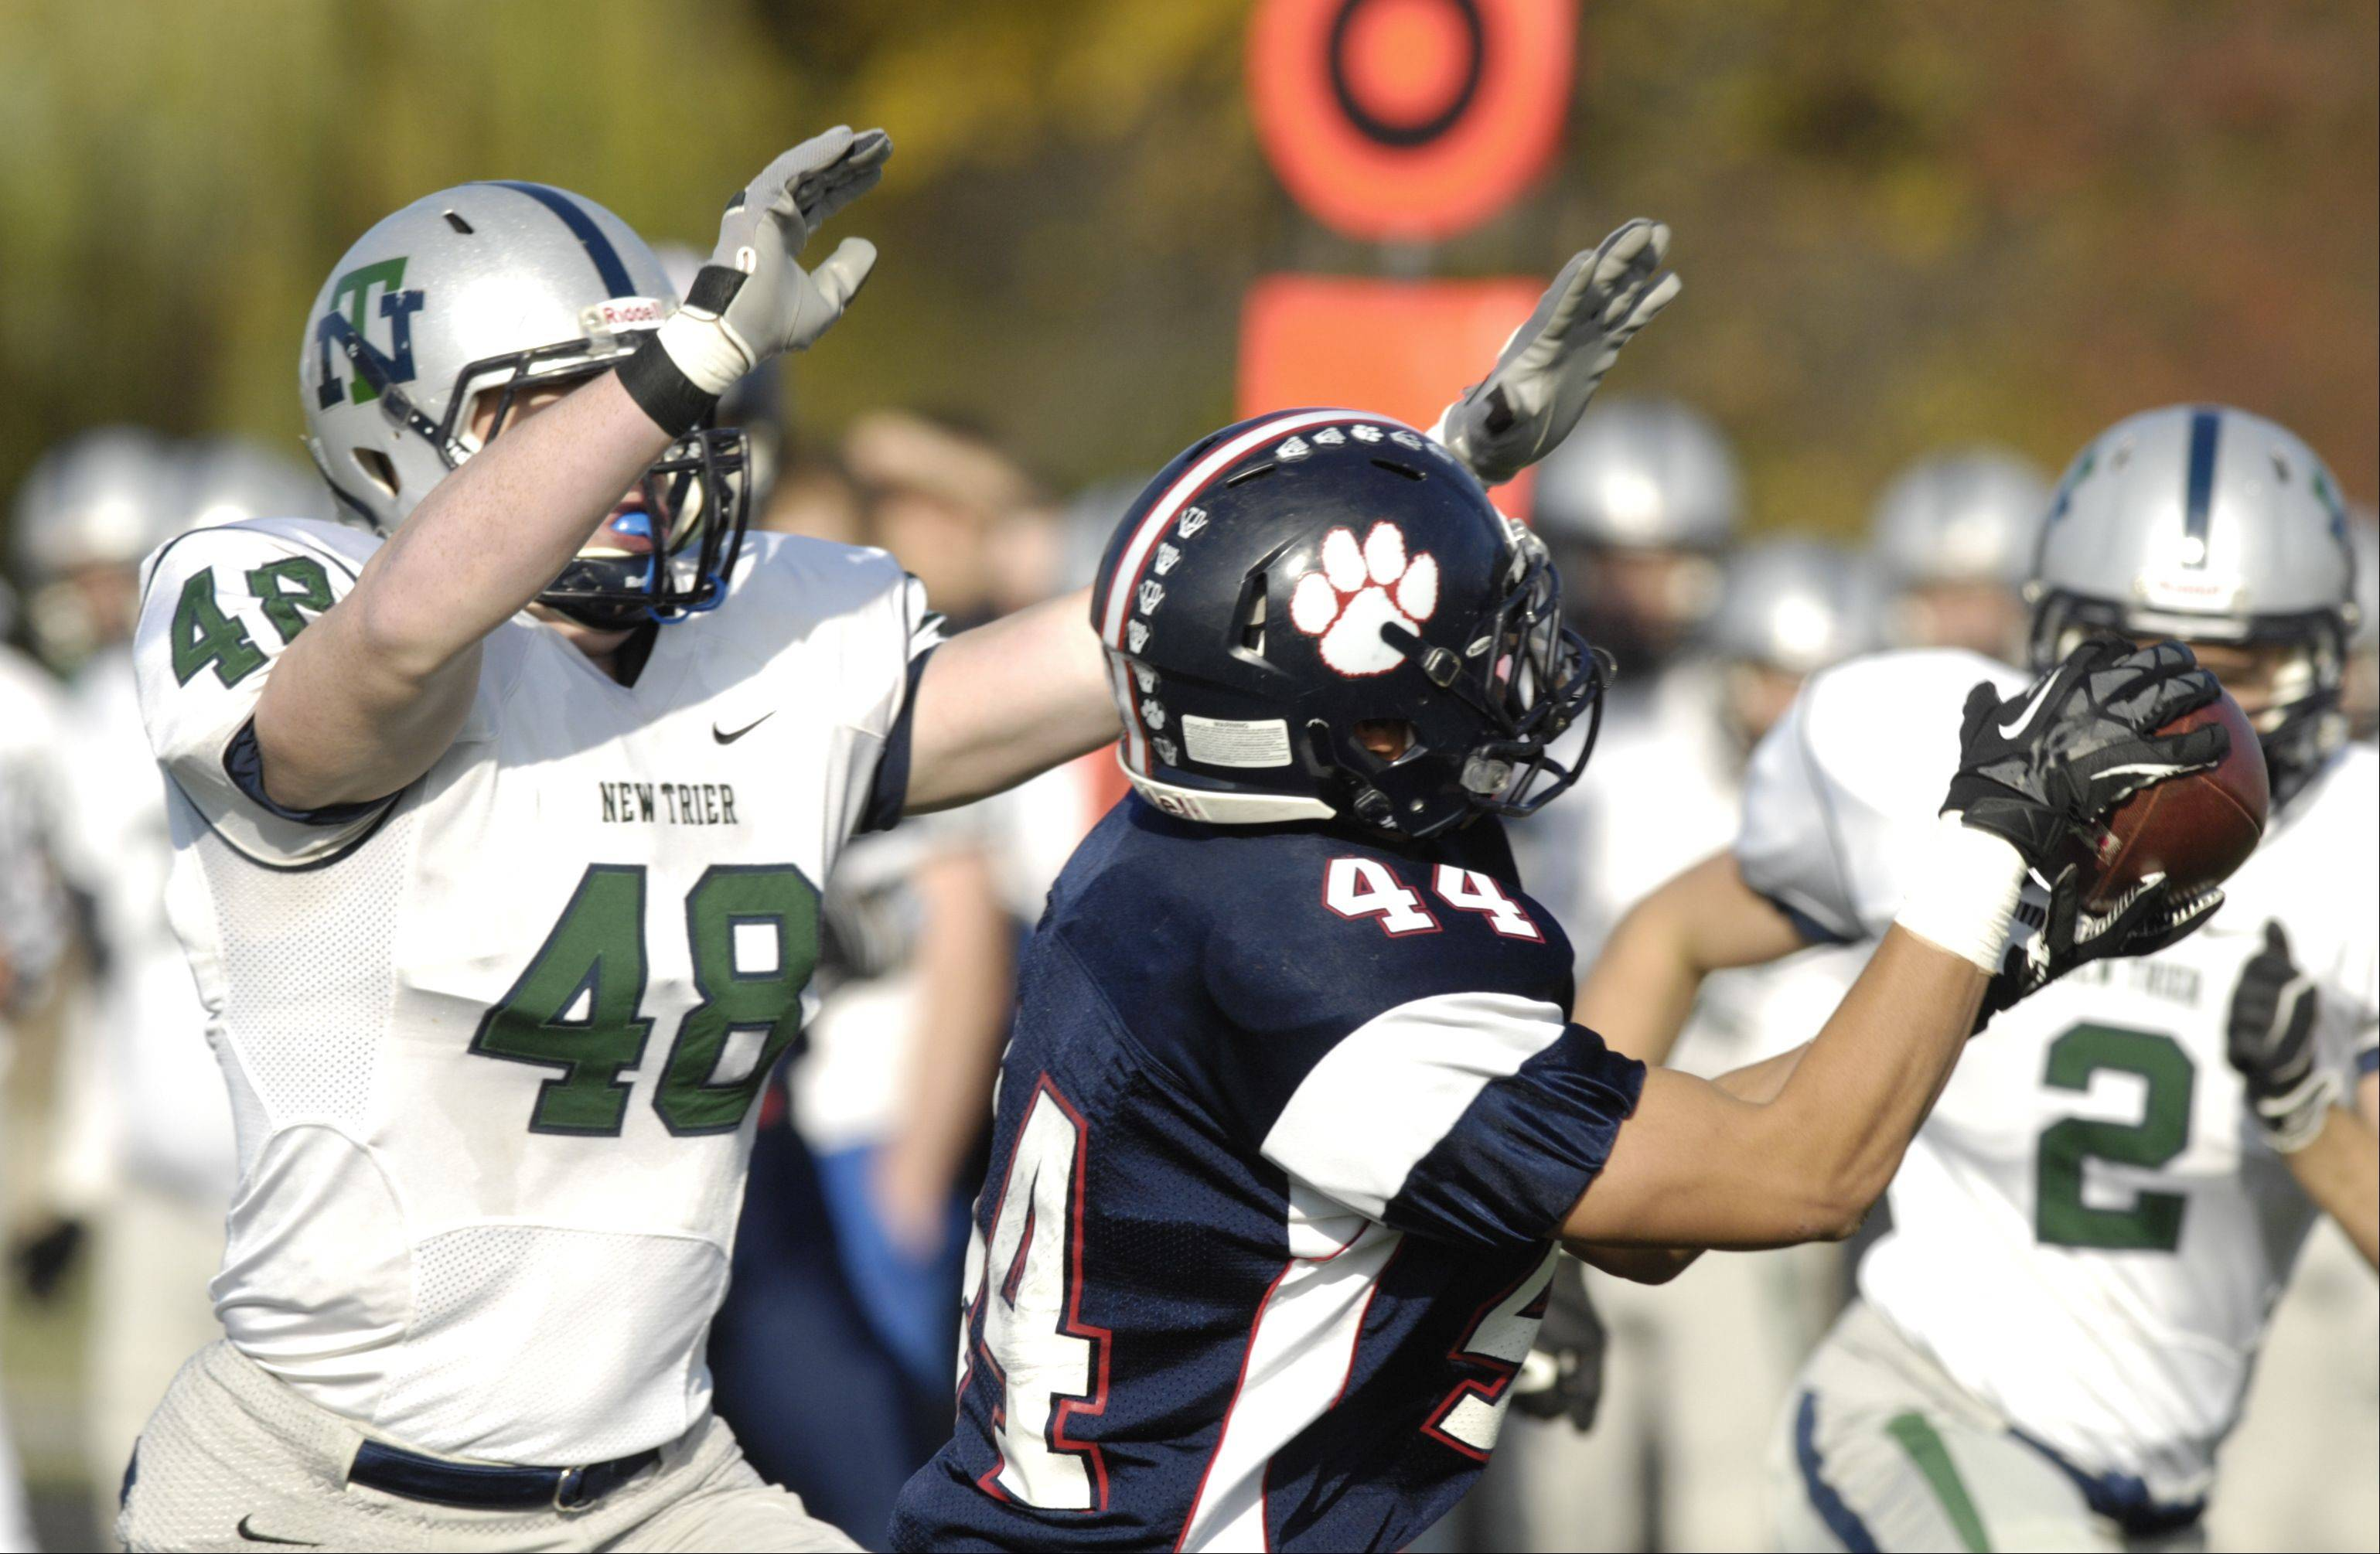 Playoffs-Round One- Photos from the Conant vs. New Trier football game on Saturday, October 27th, in Hoffman Estates.